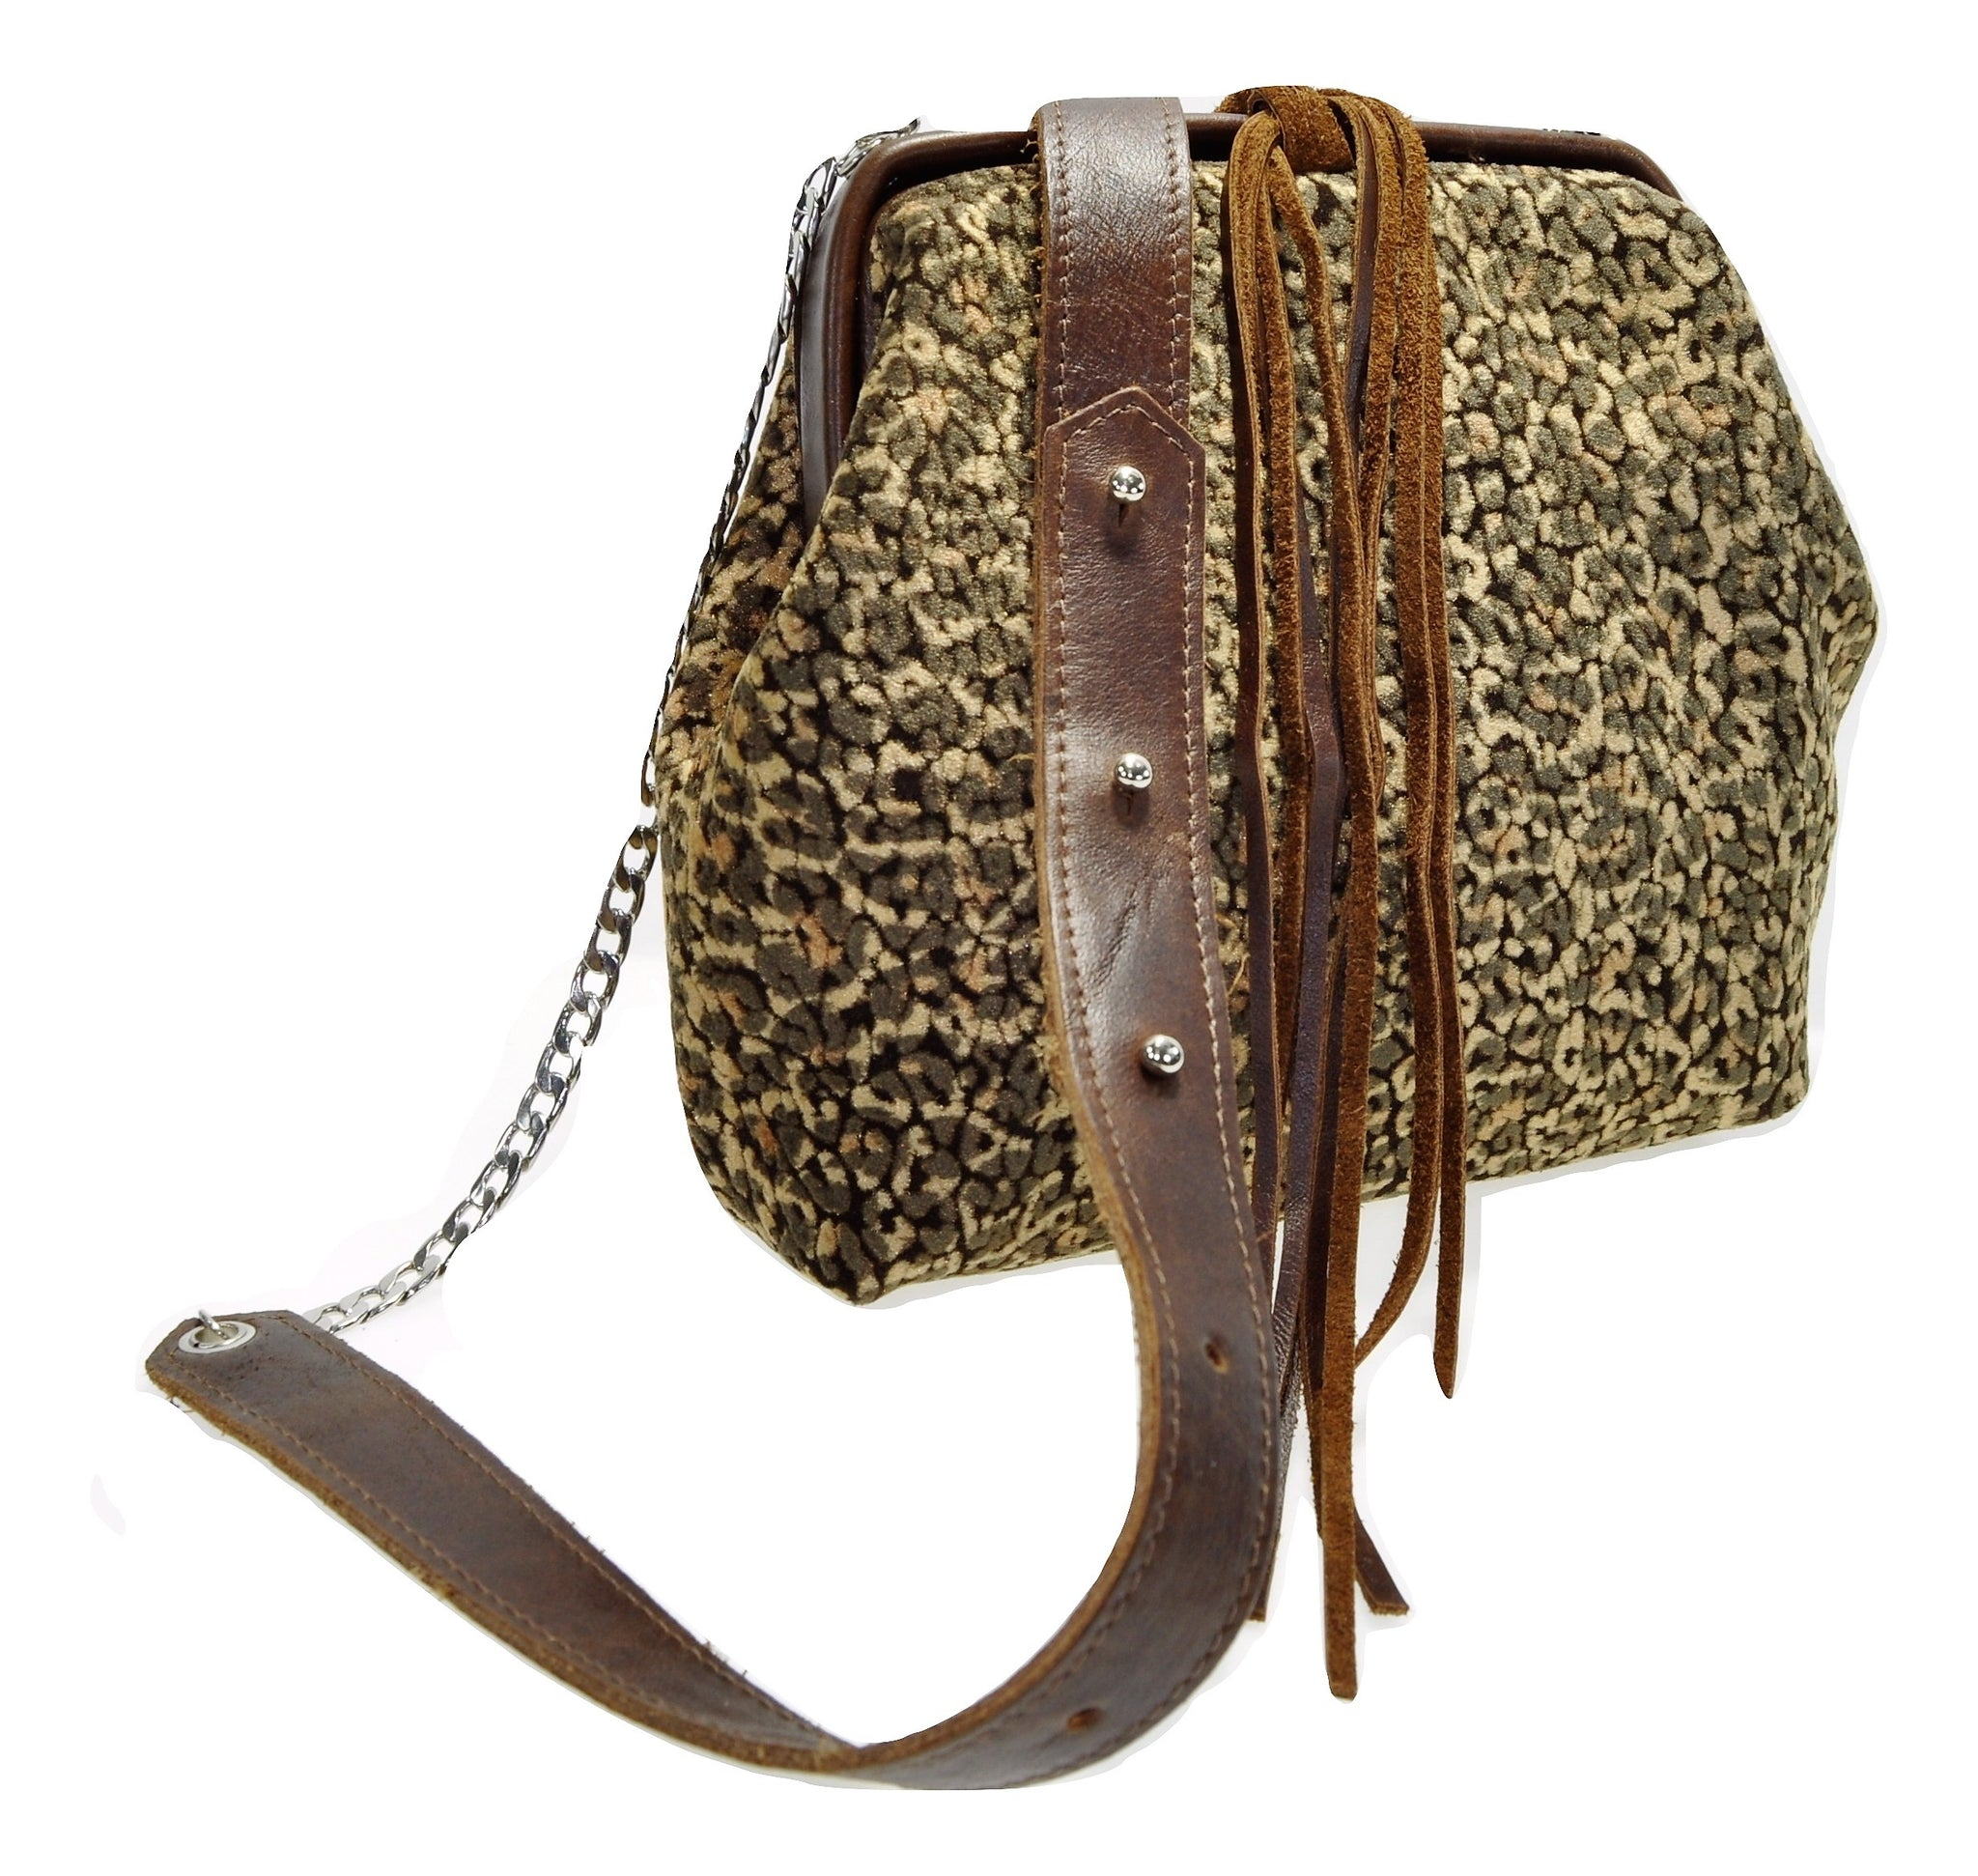 Cross-body small Bag - Avi Algrisi